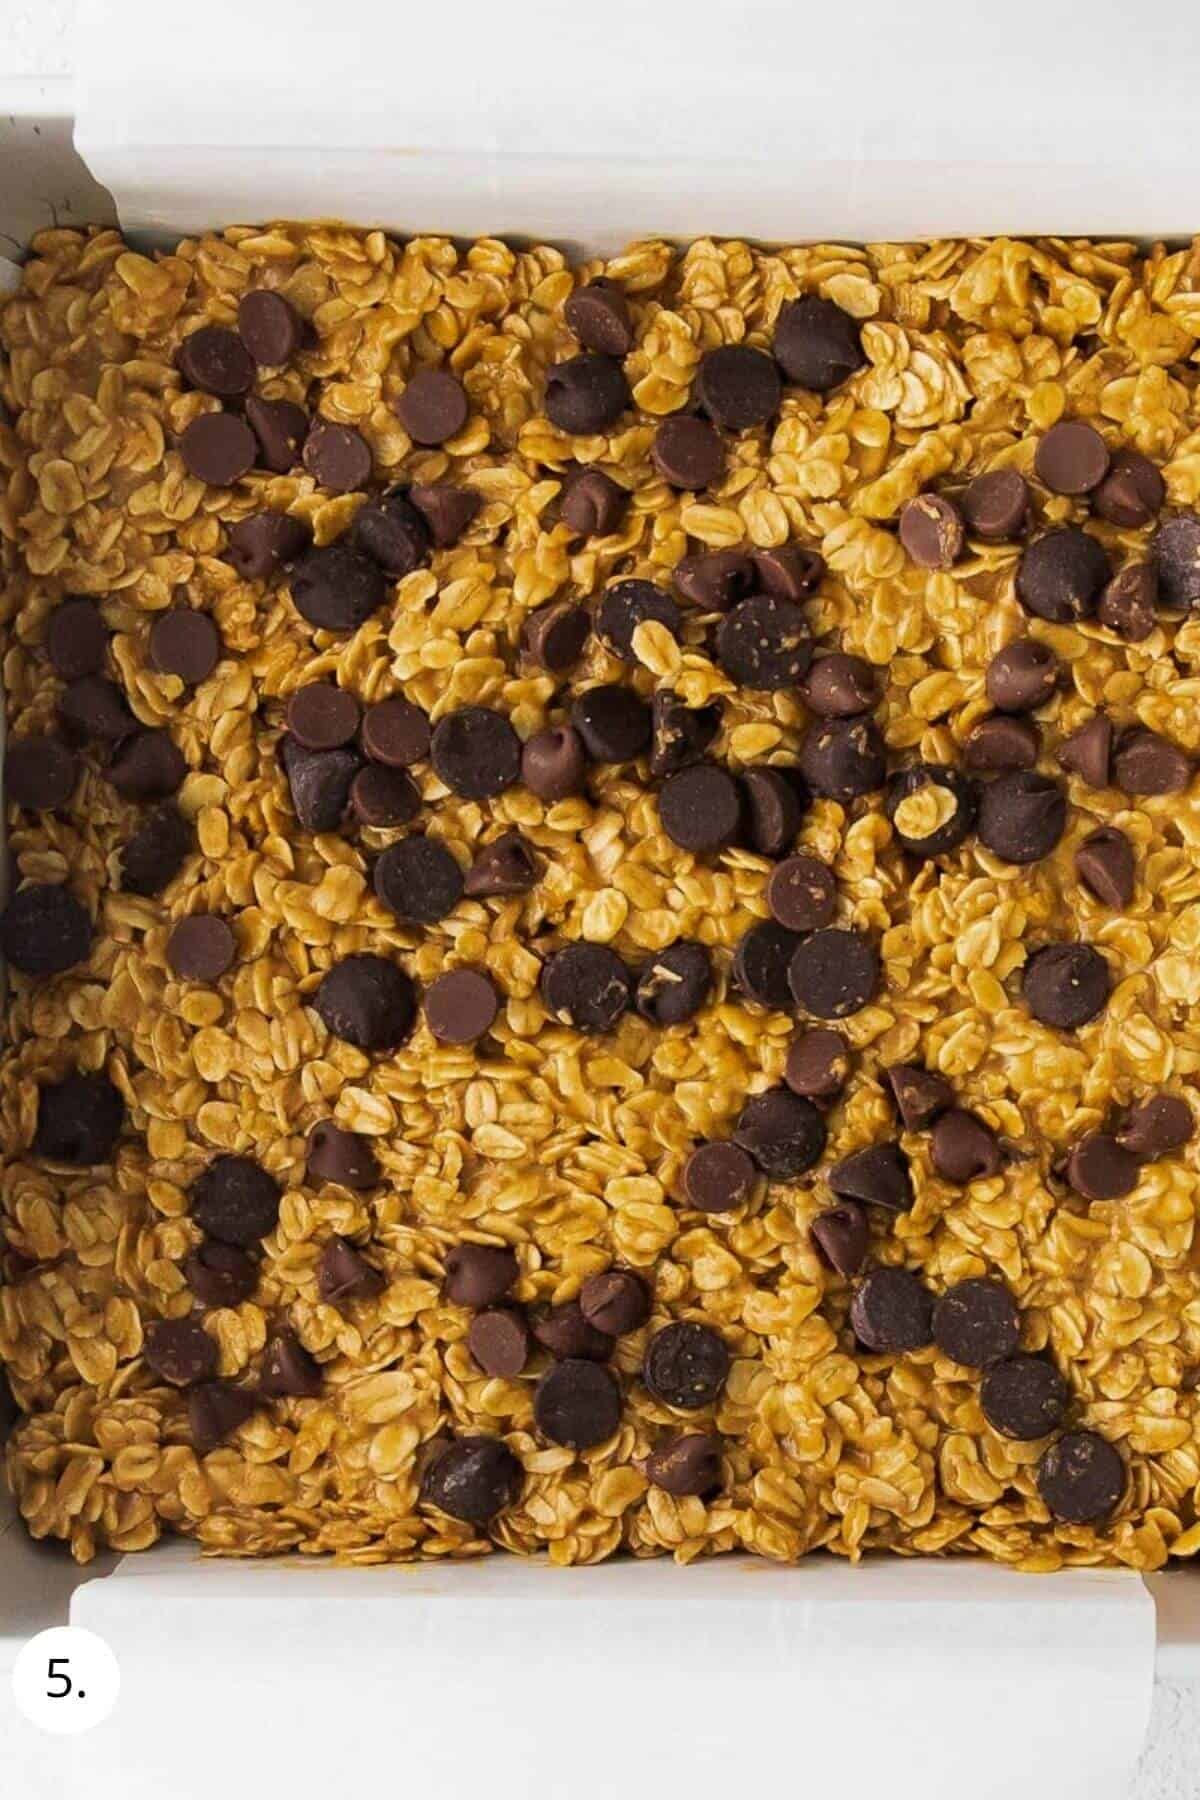 granola bar mixture in a pan with chocolate chips